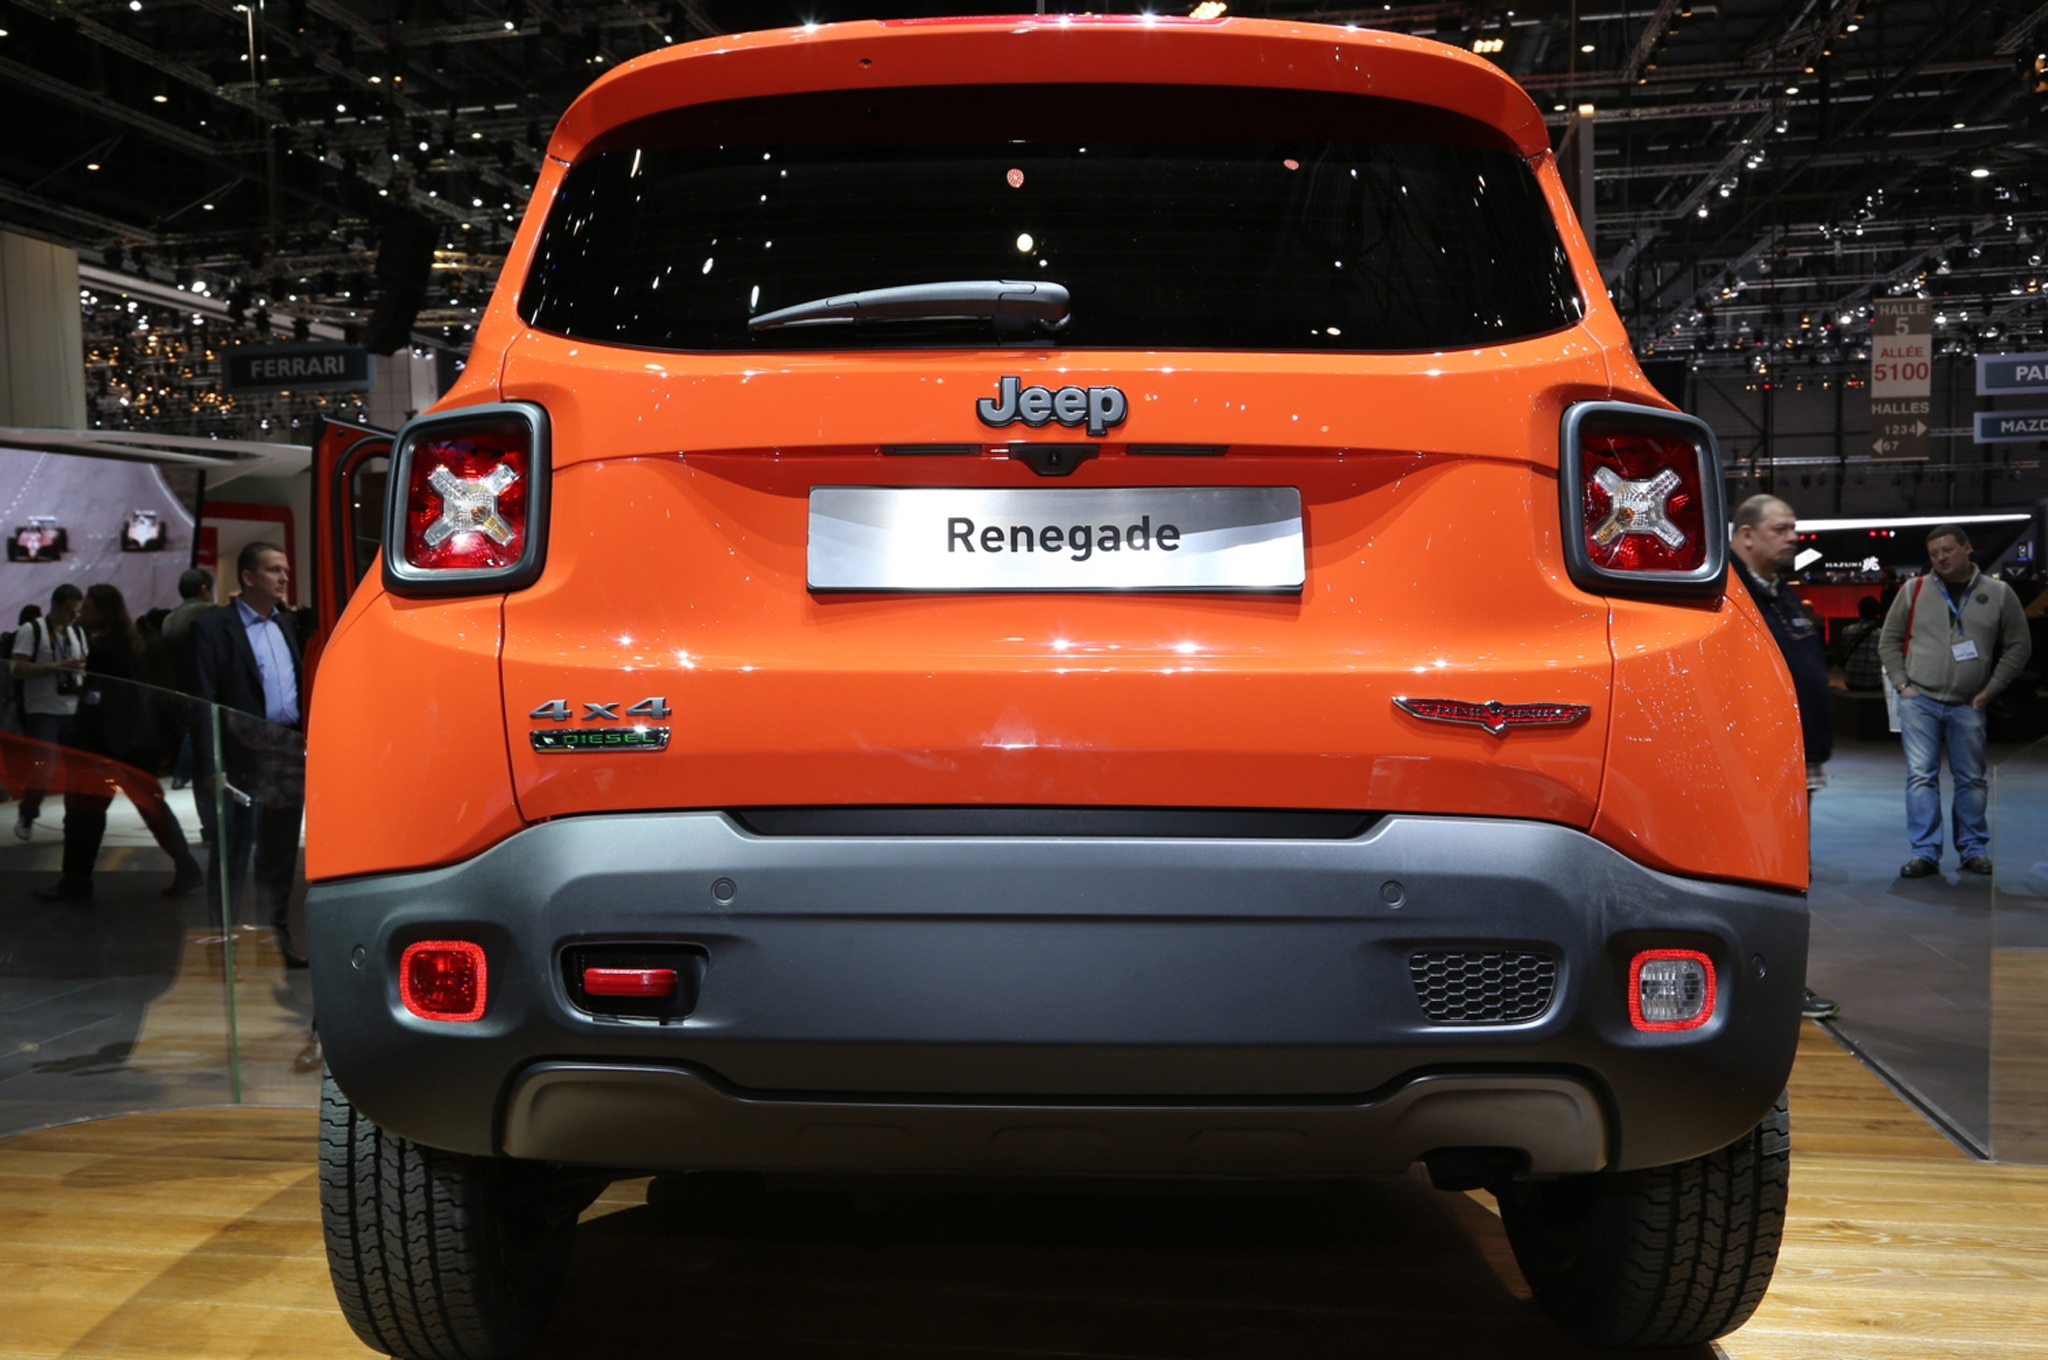 2015 Jeep Renegade Trailhawk show floor rear view